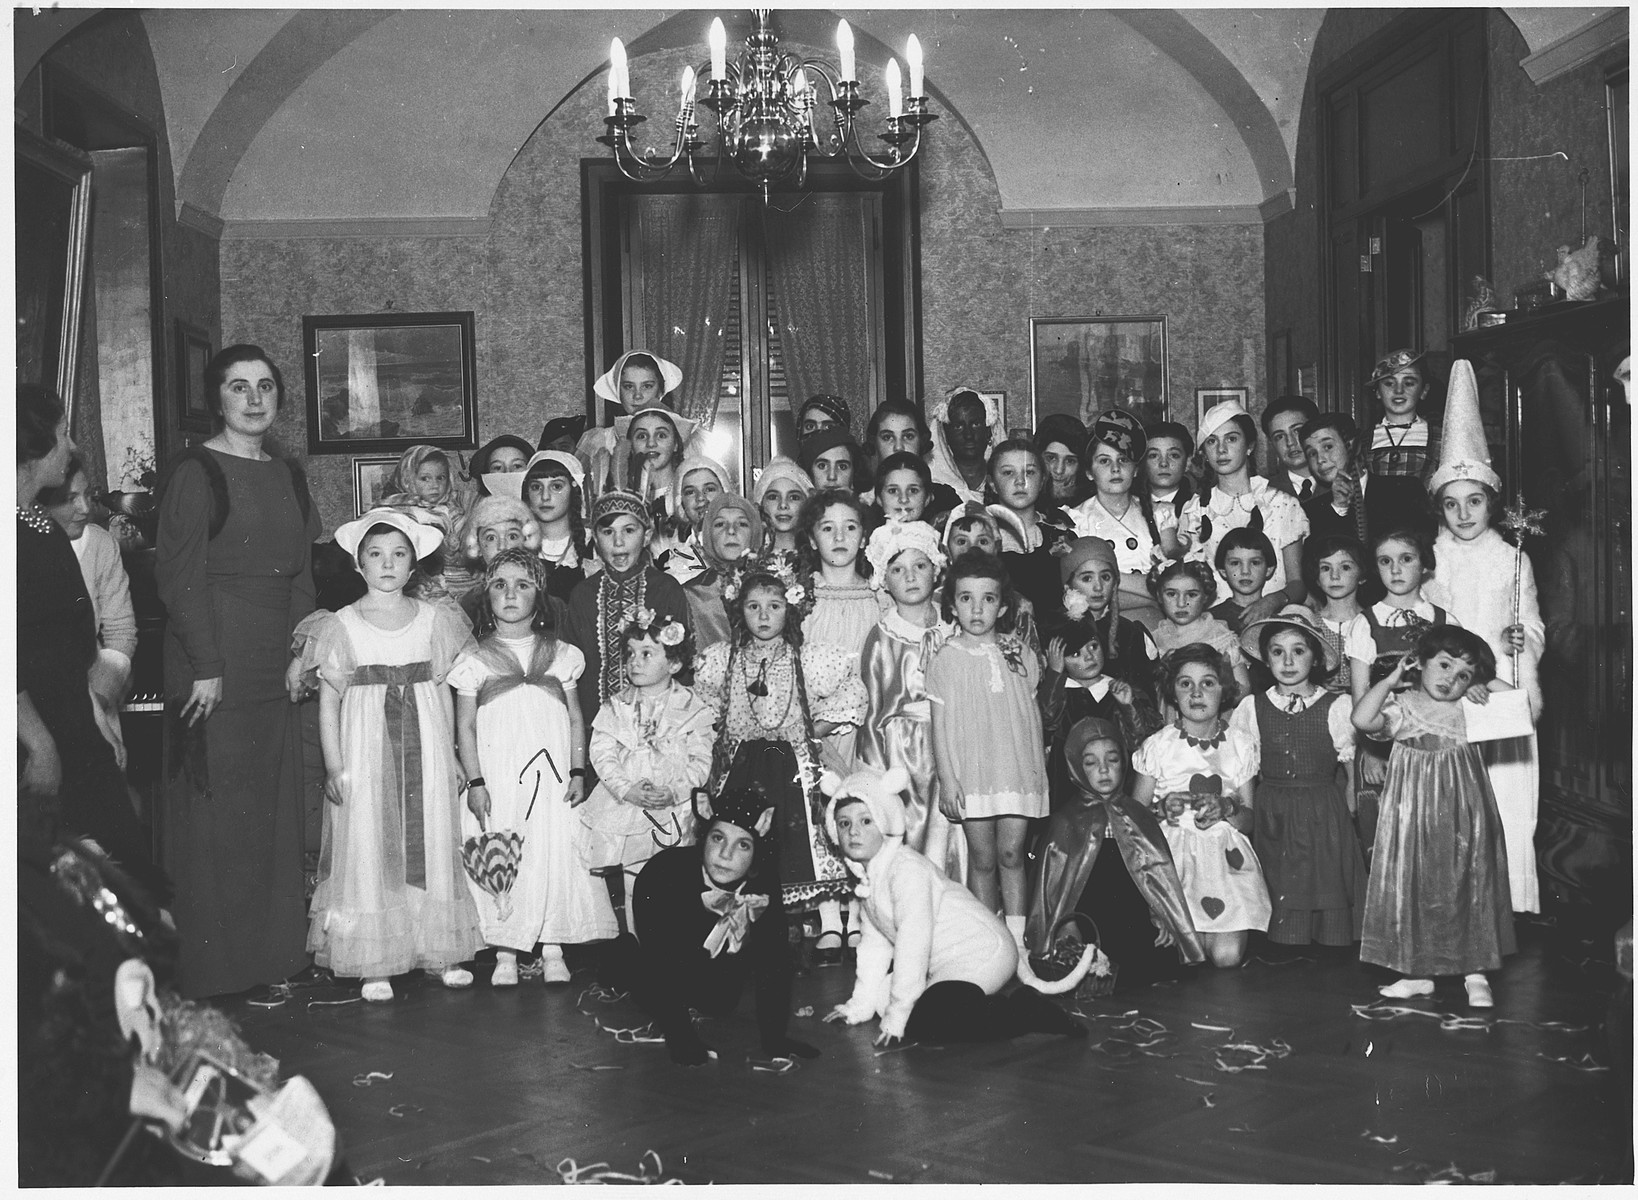 Jewish children attend a Purim costume party in an opulent apartment in Rome owned by a Hungarian Jewish woman.  Among those pictured are Serenella and Avishua Foa and their cousins, Anna and Andrea Bises.